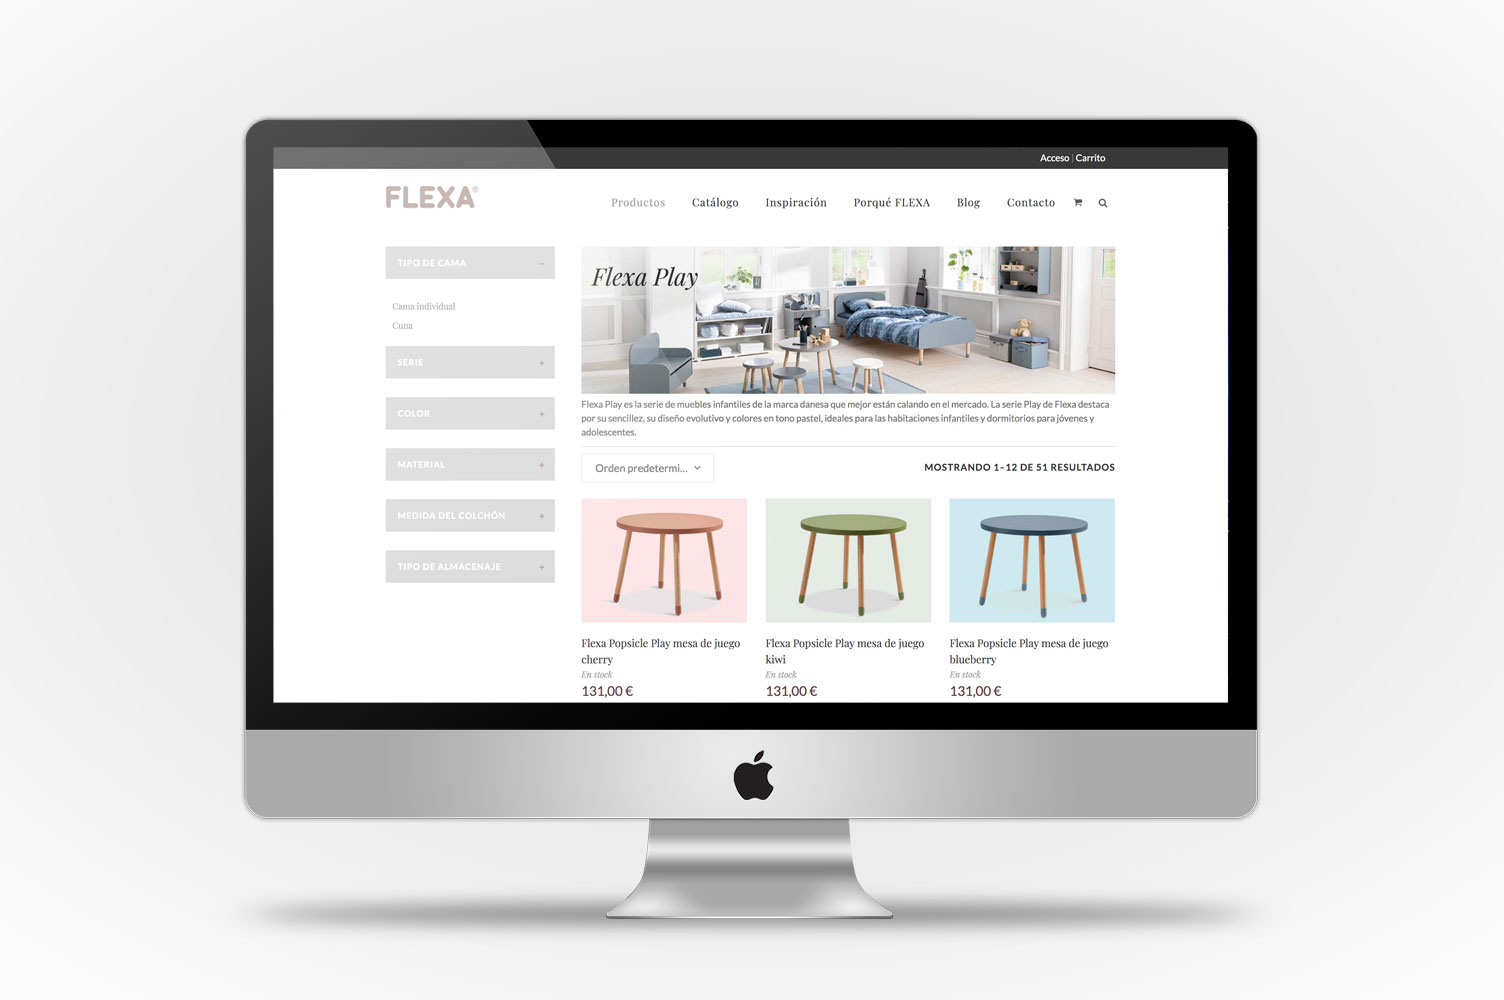 Flexa online shop desktop